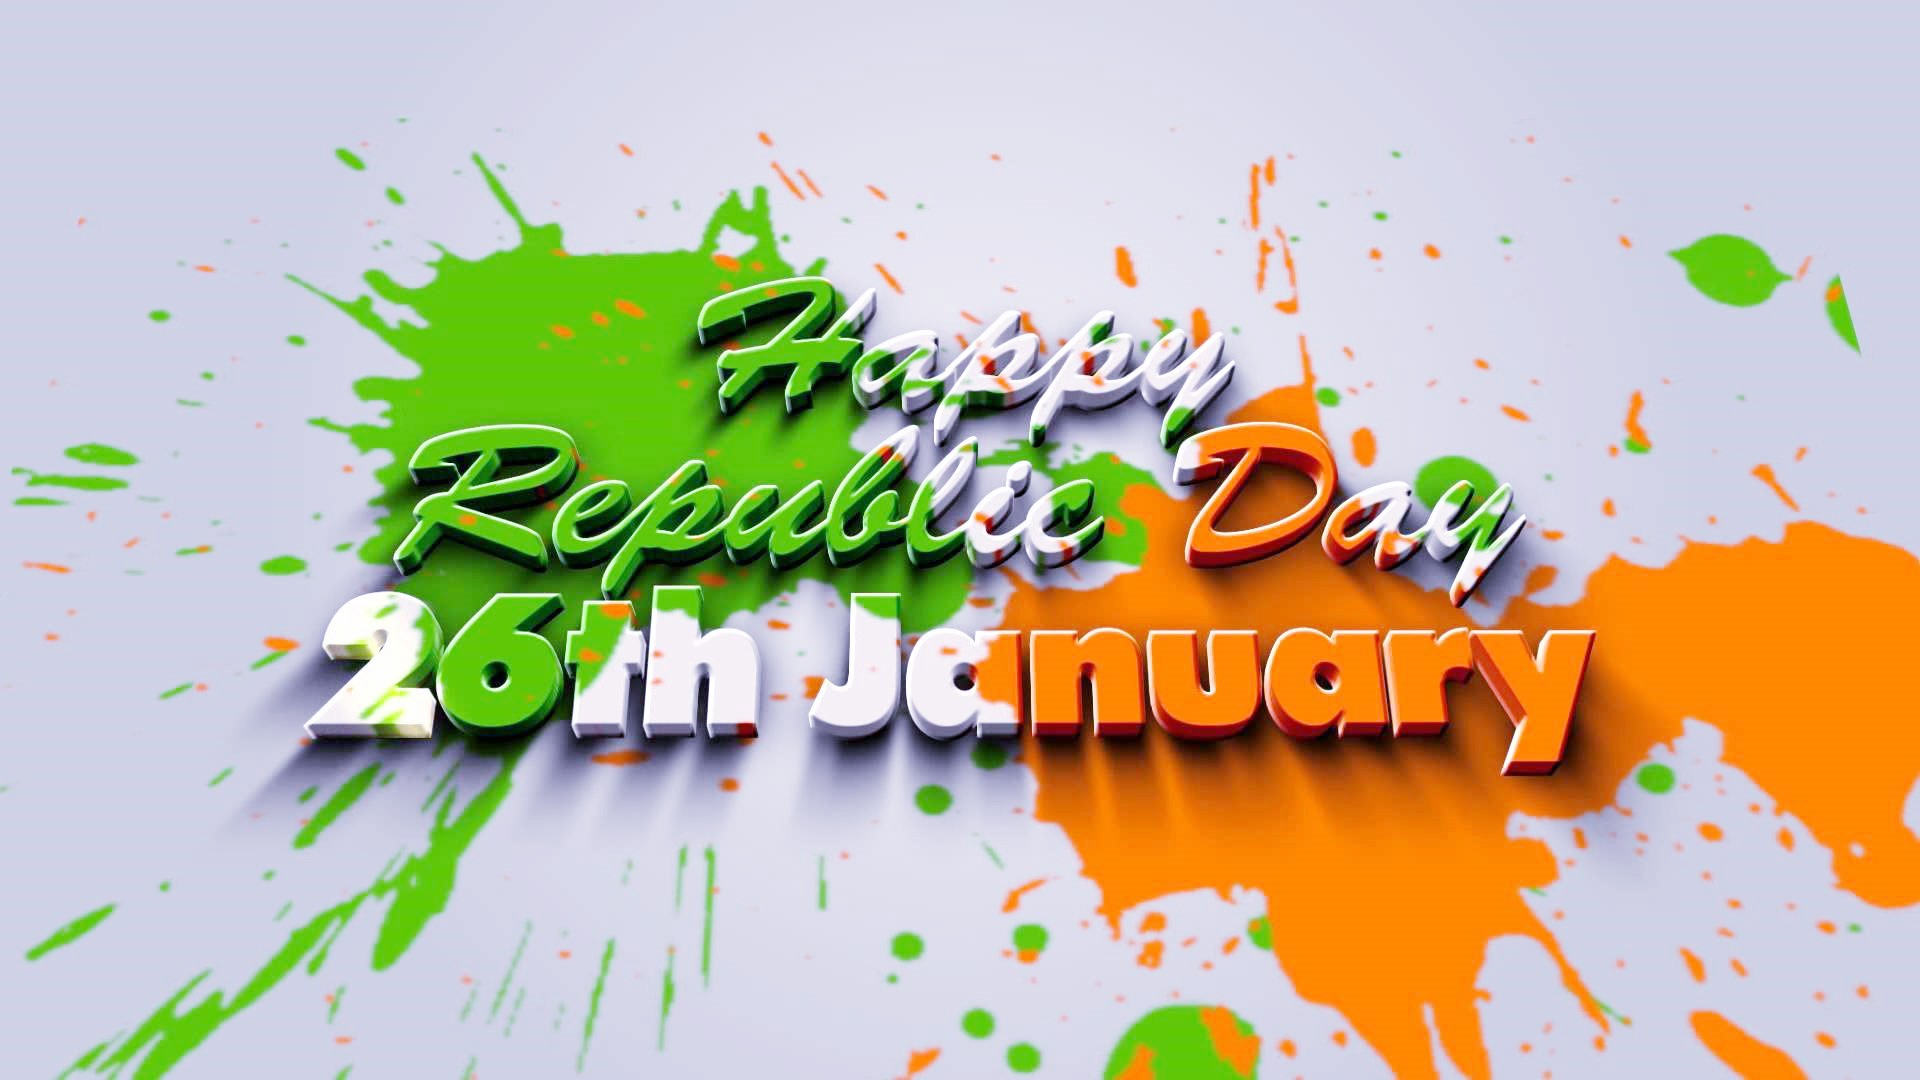 Republic Day Images 2021